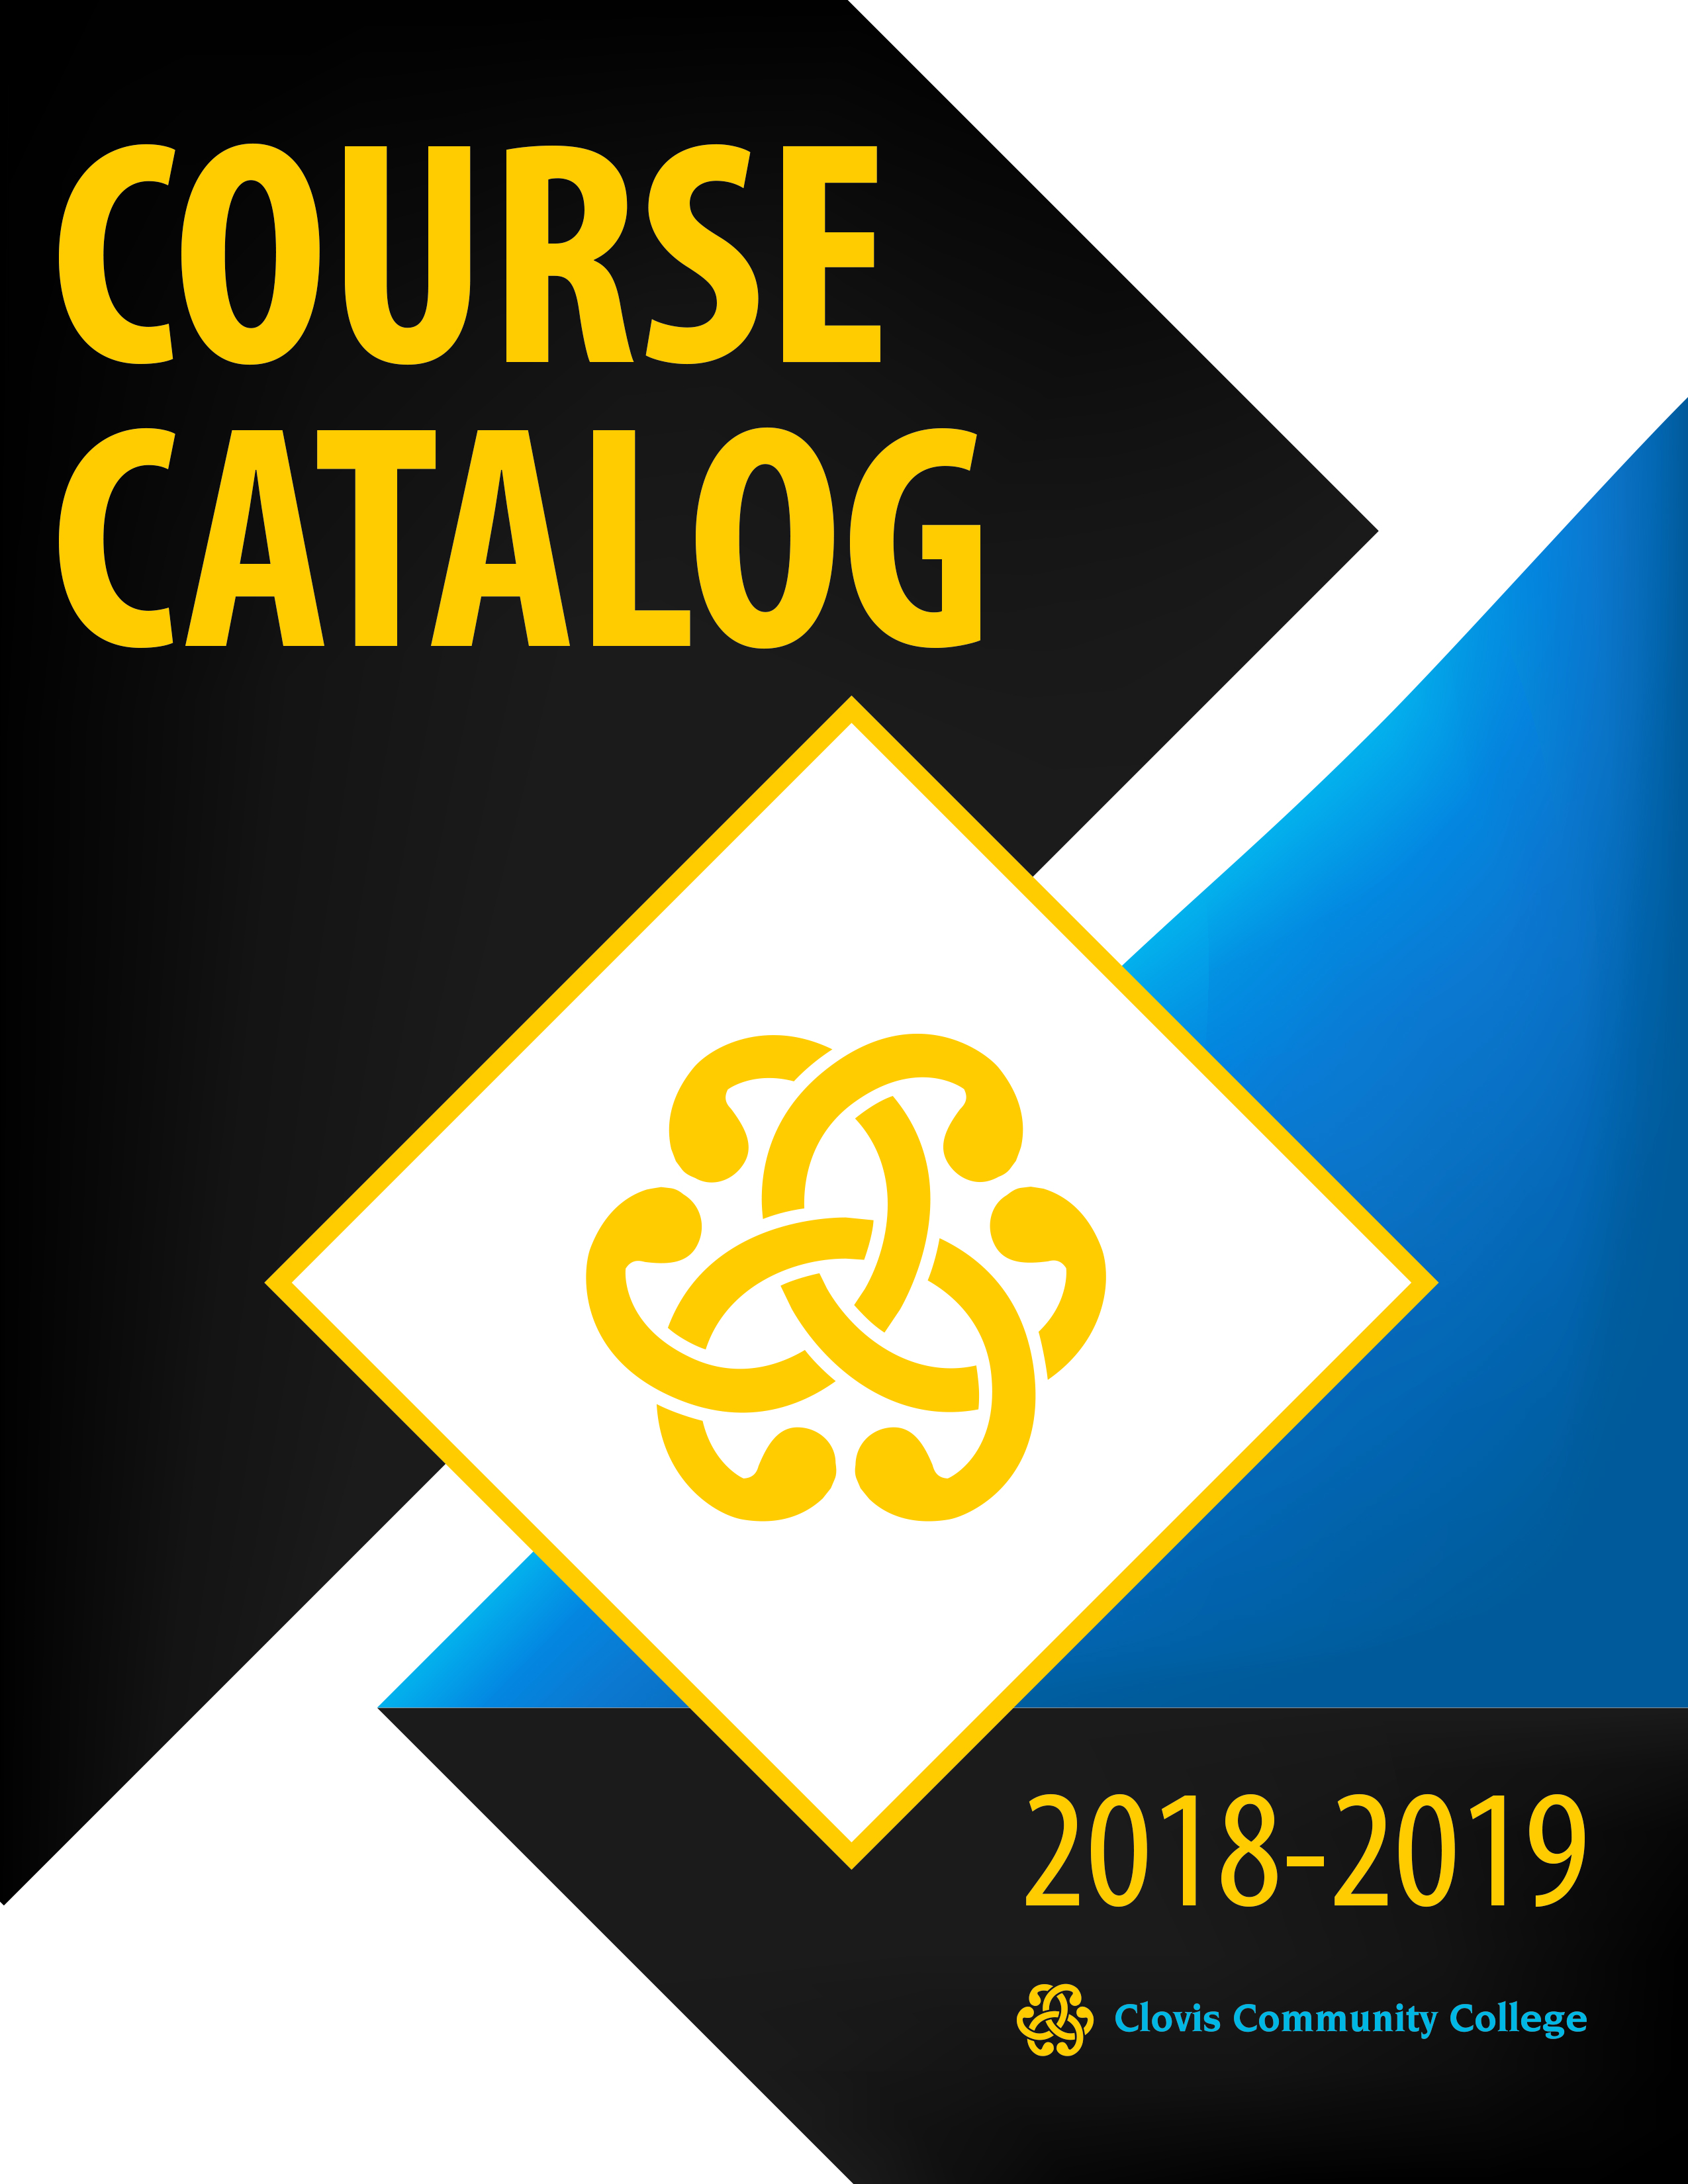 ccc publications schedules course catalogs and more